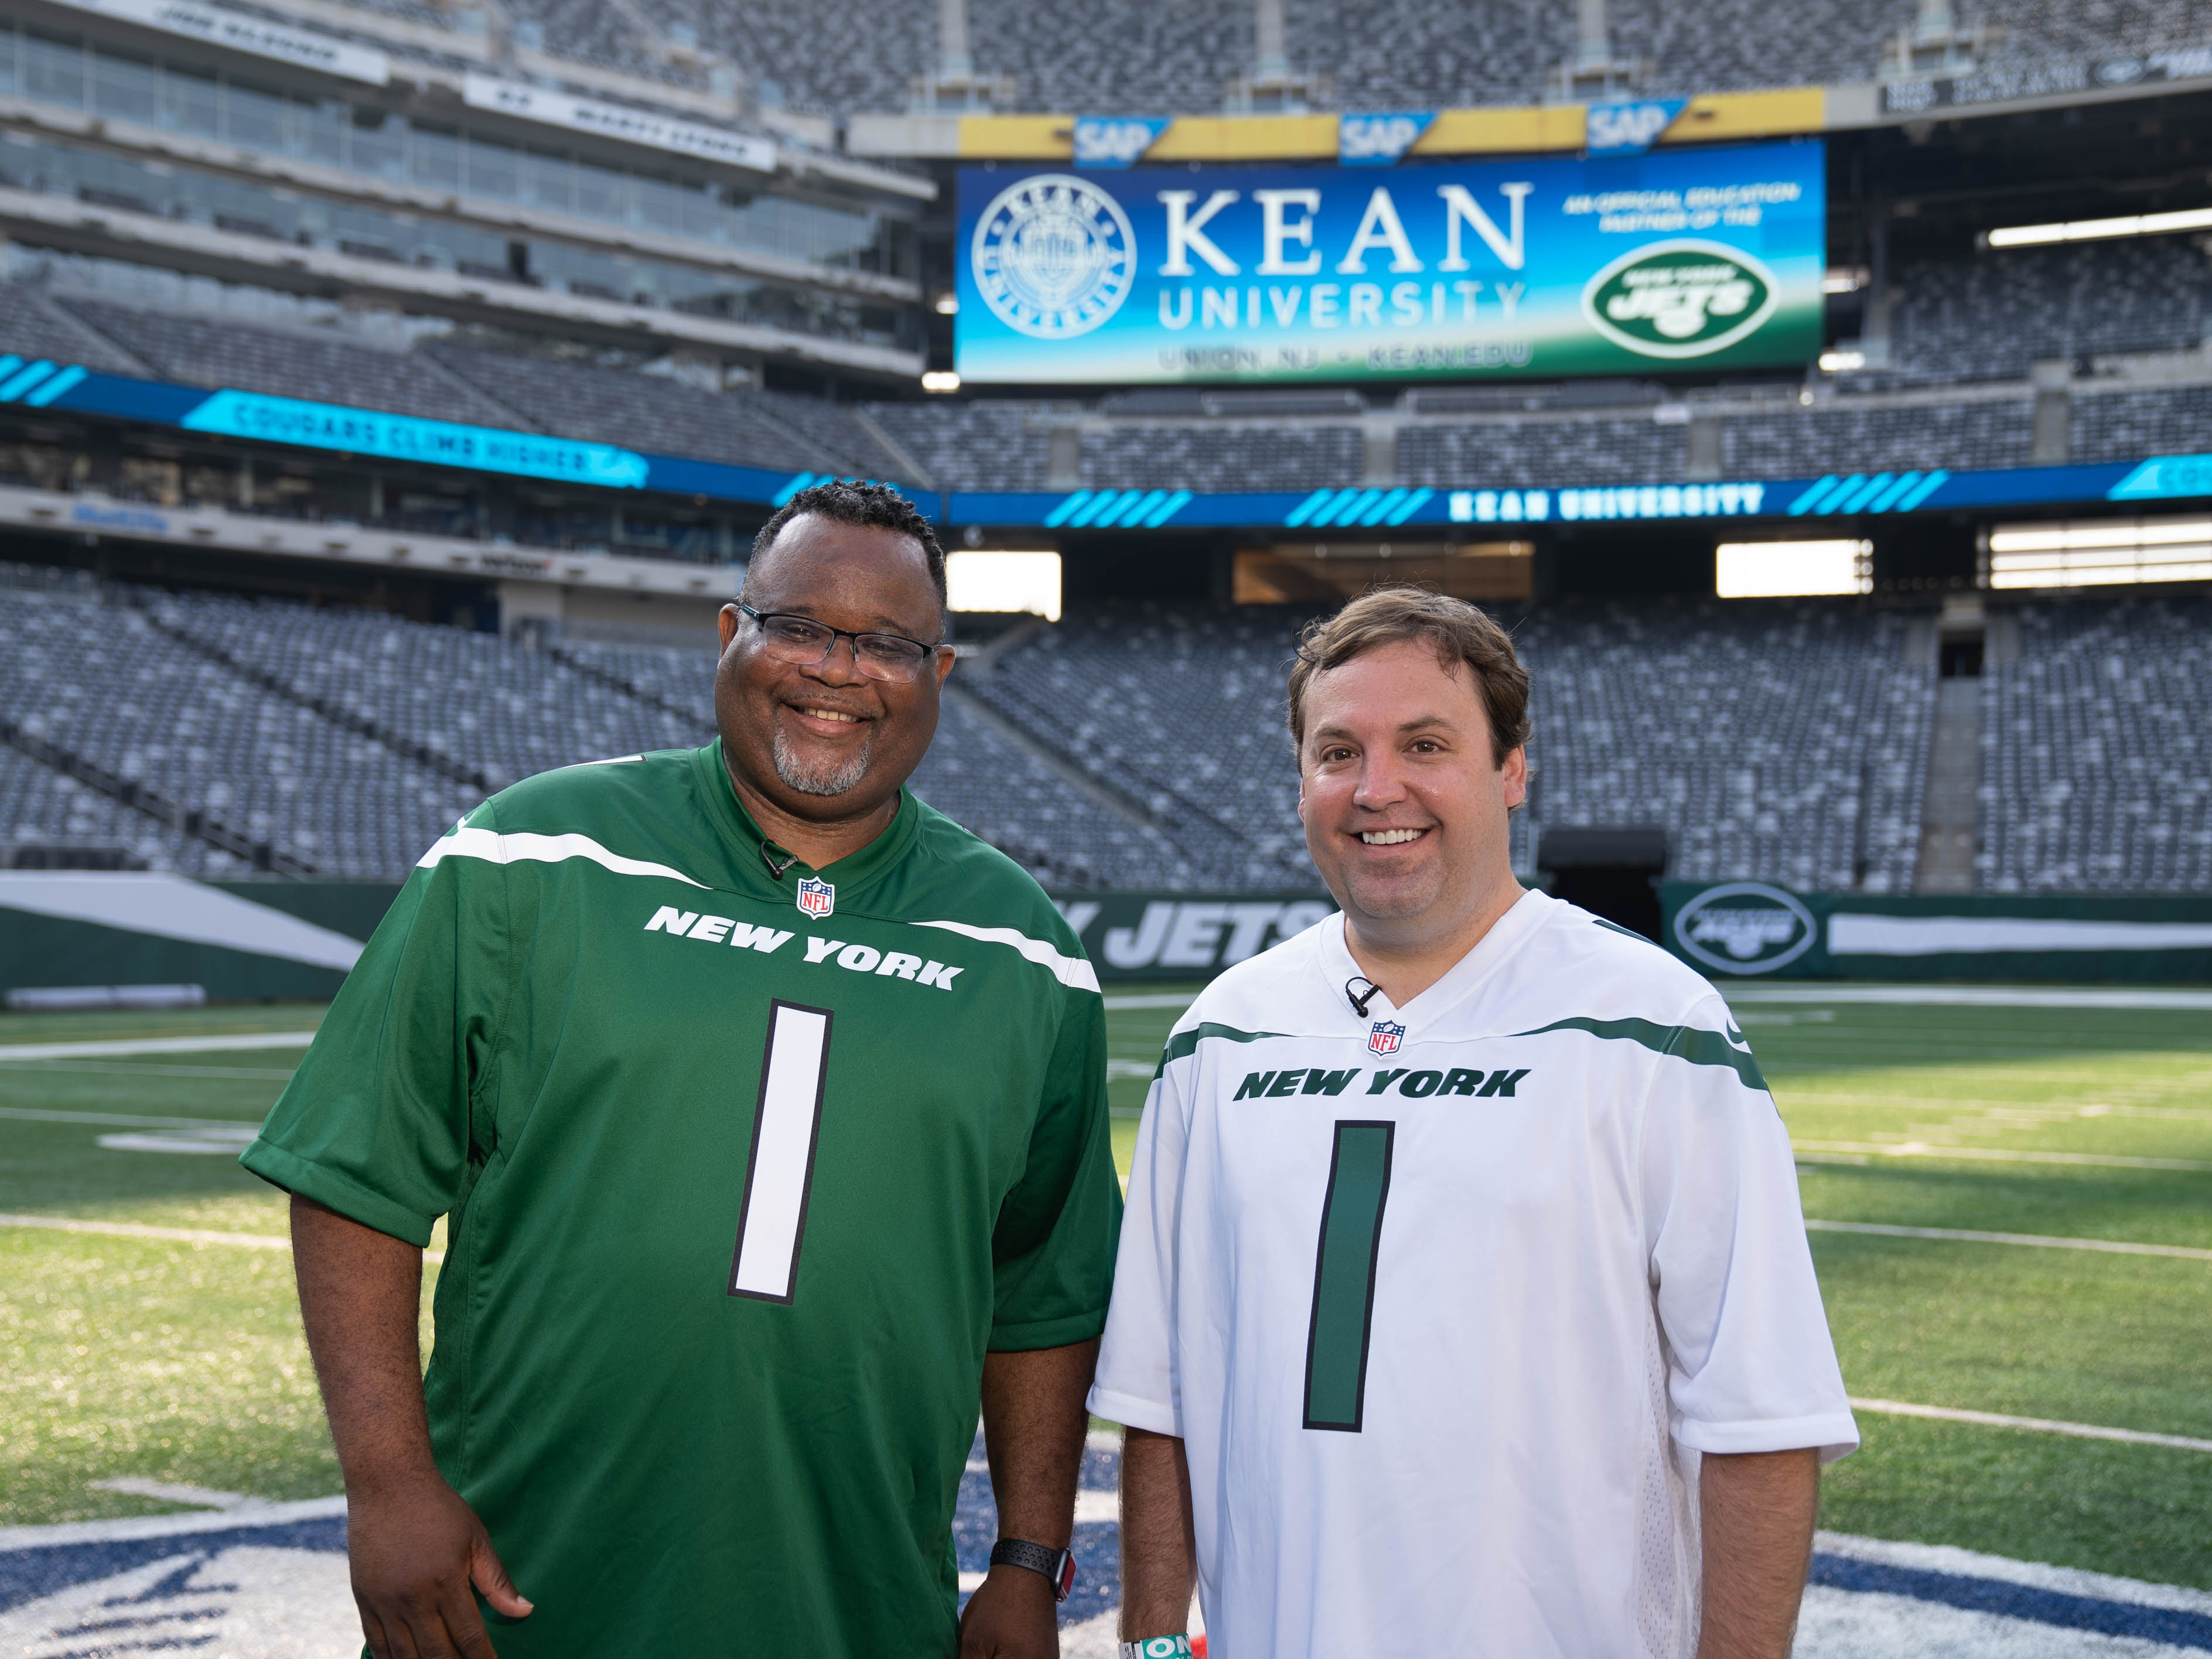 Kean University President Lamont O. Repollet, Ed.D., and Kean Foundation CEO Bill Miller on the field at MetLife Stadium.